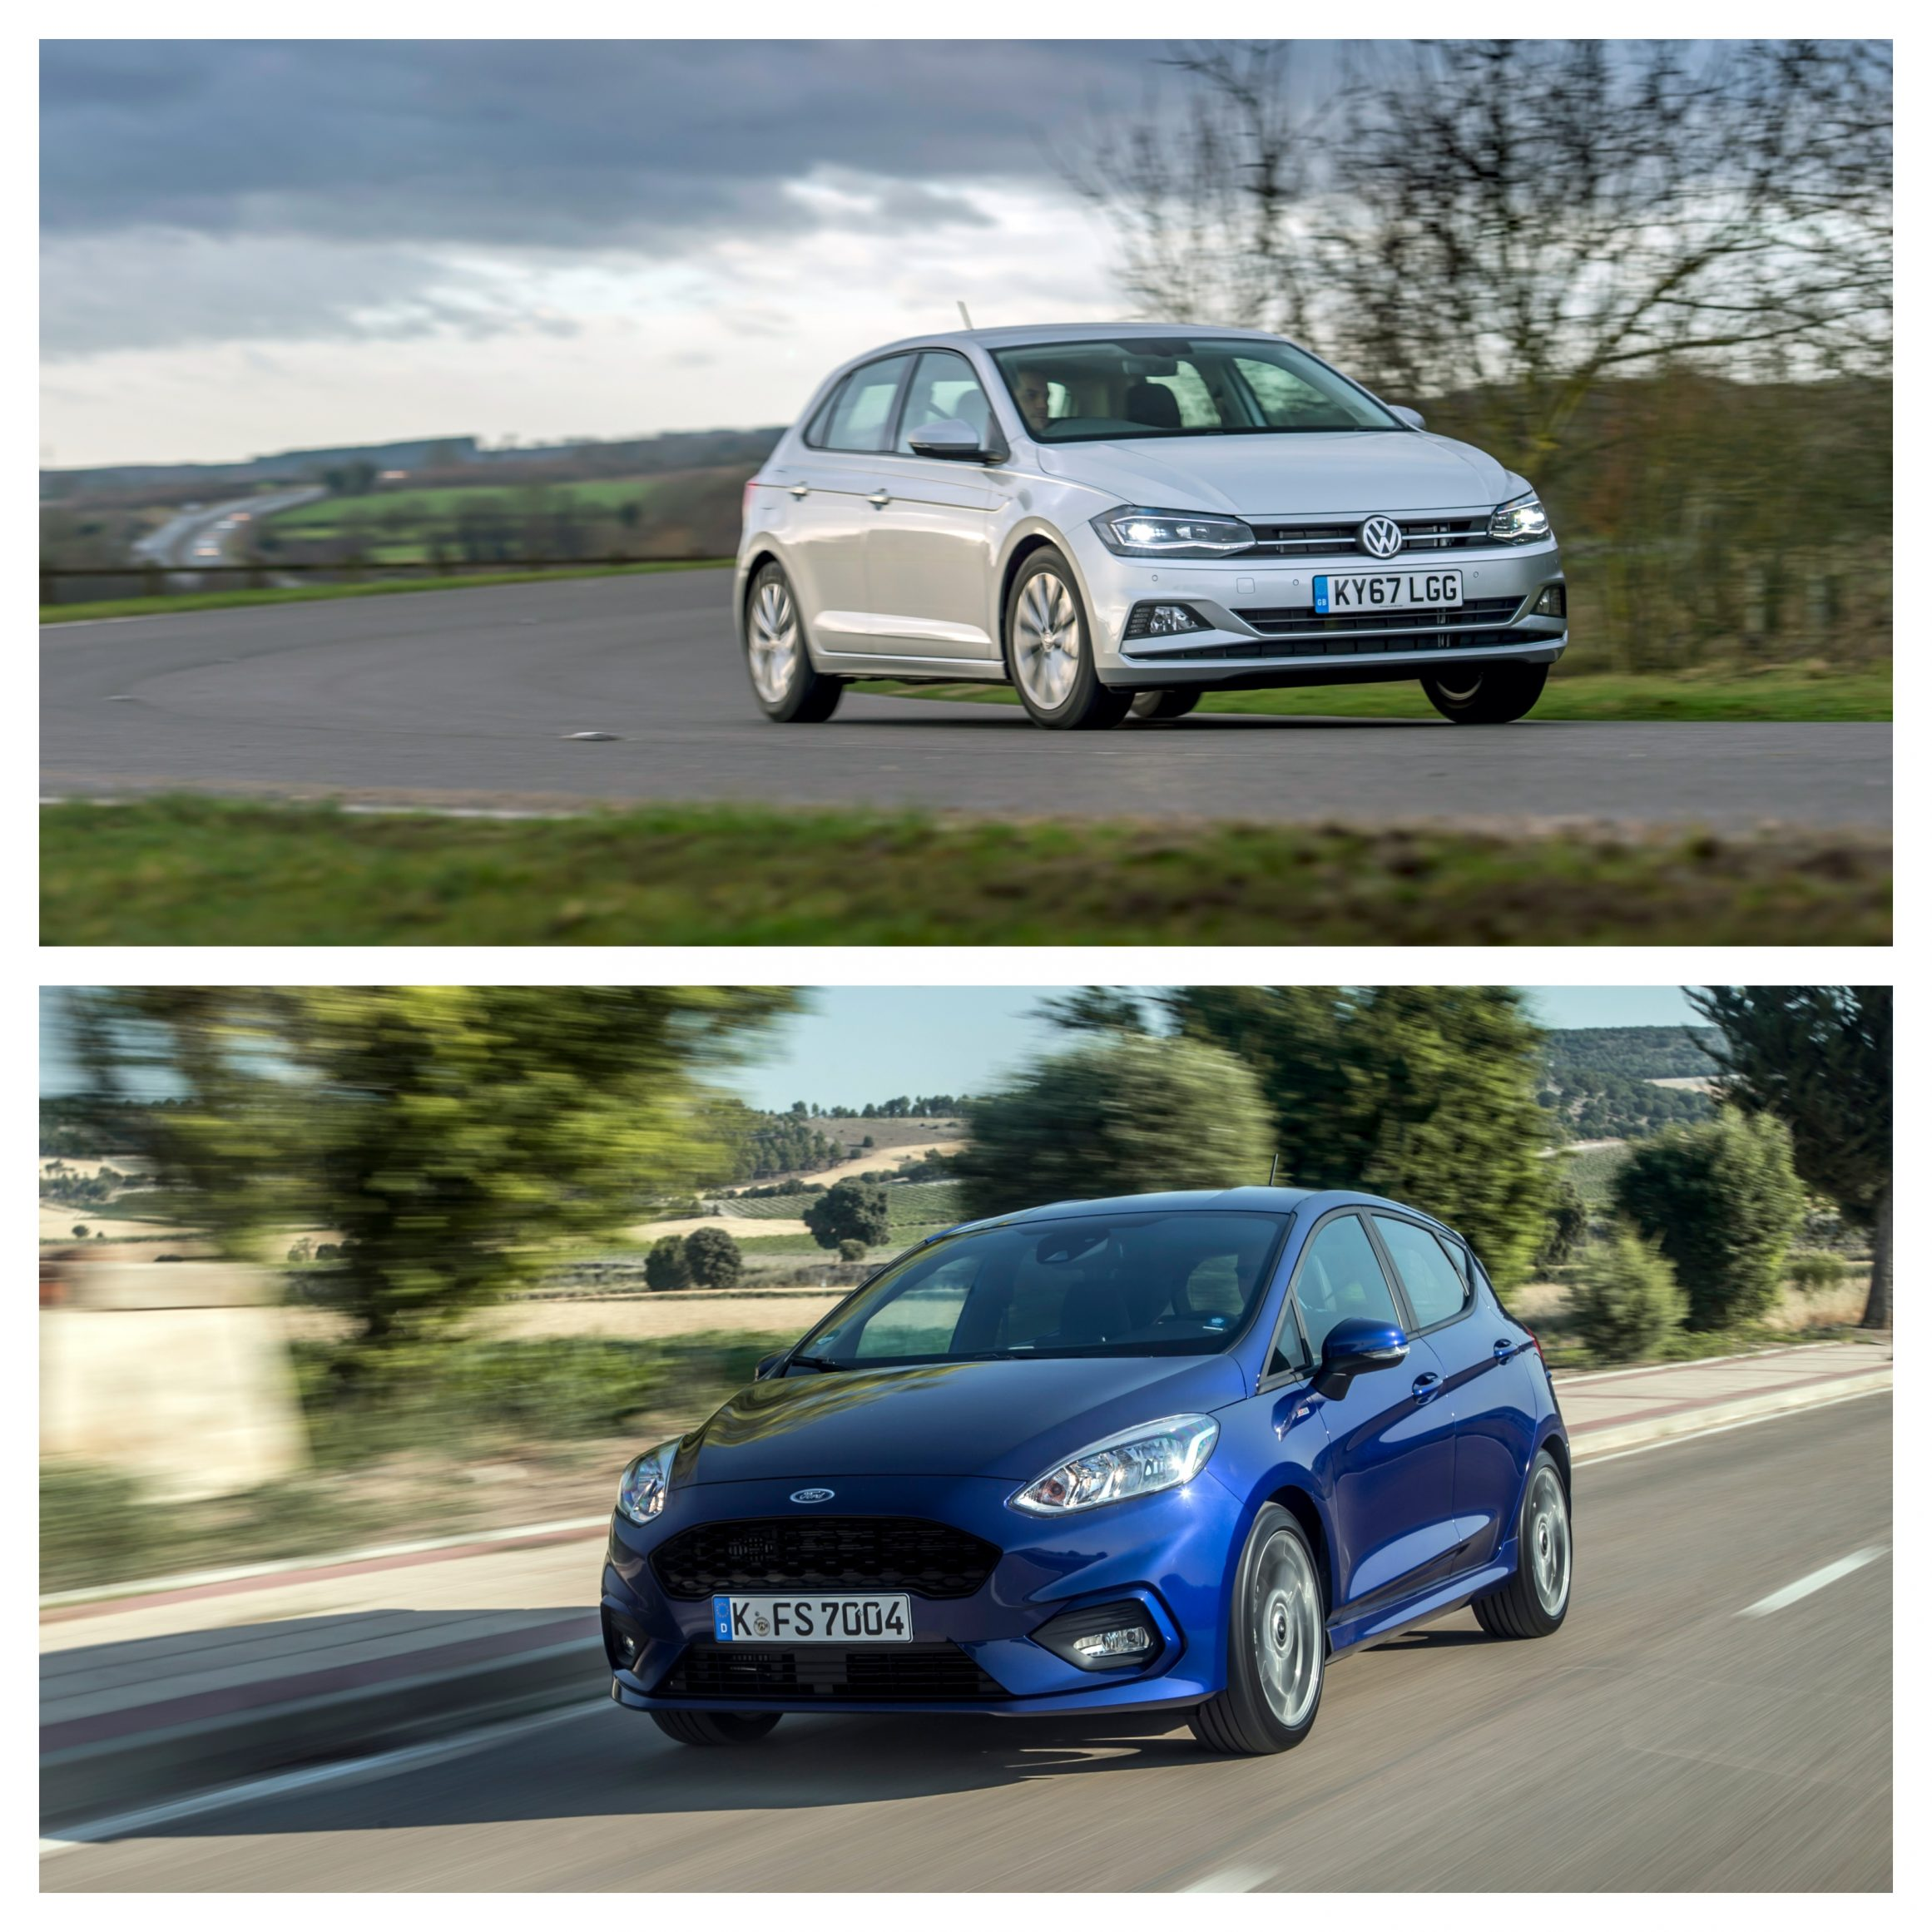 Polo Vs Fiesta - performance and price